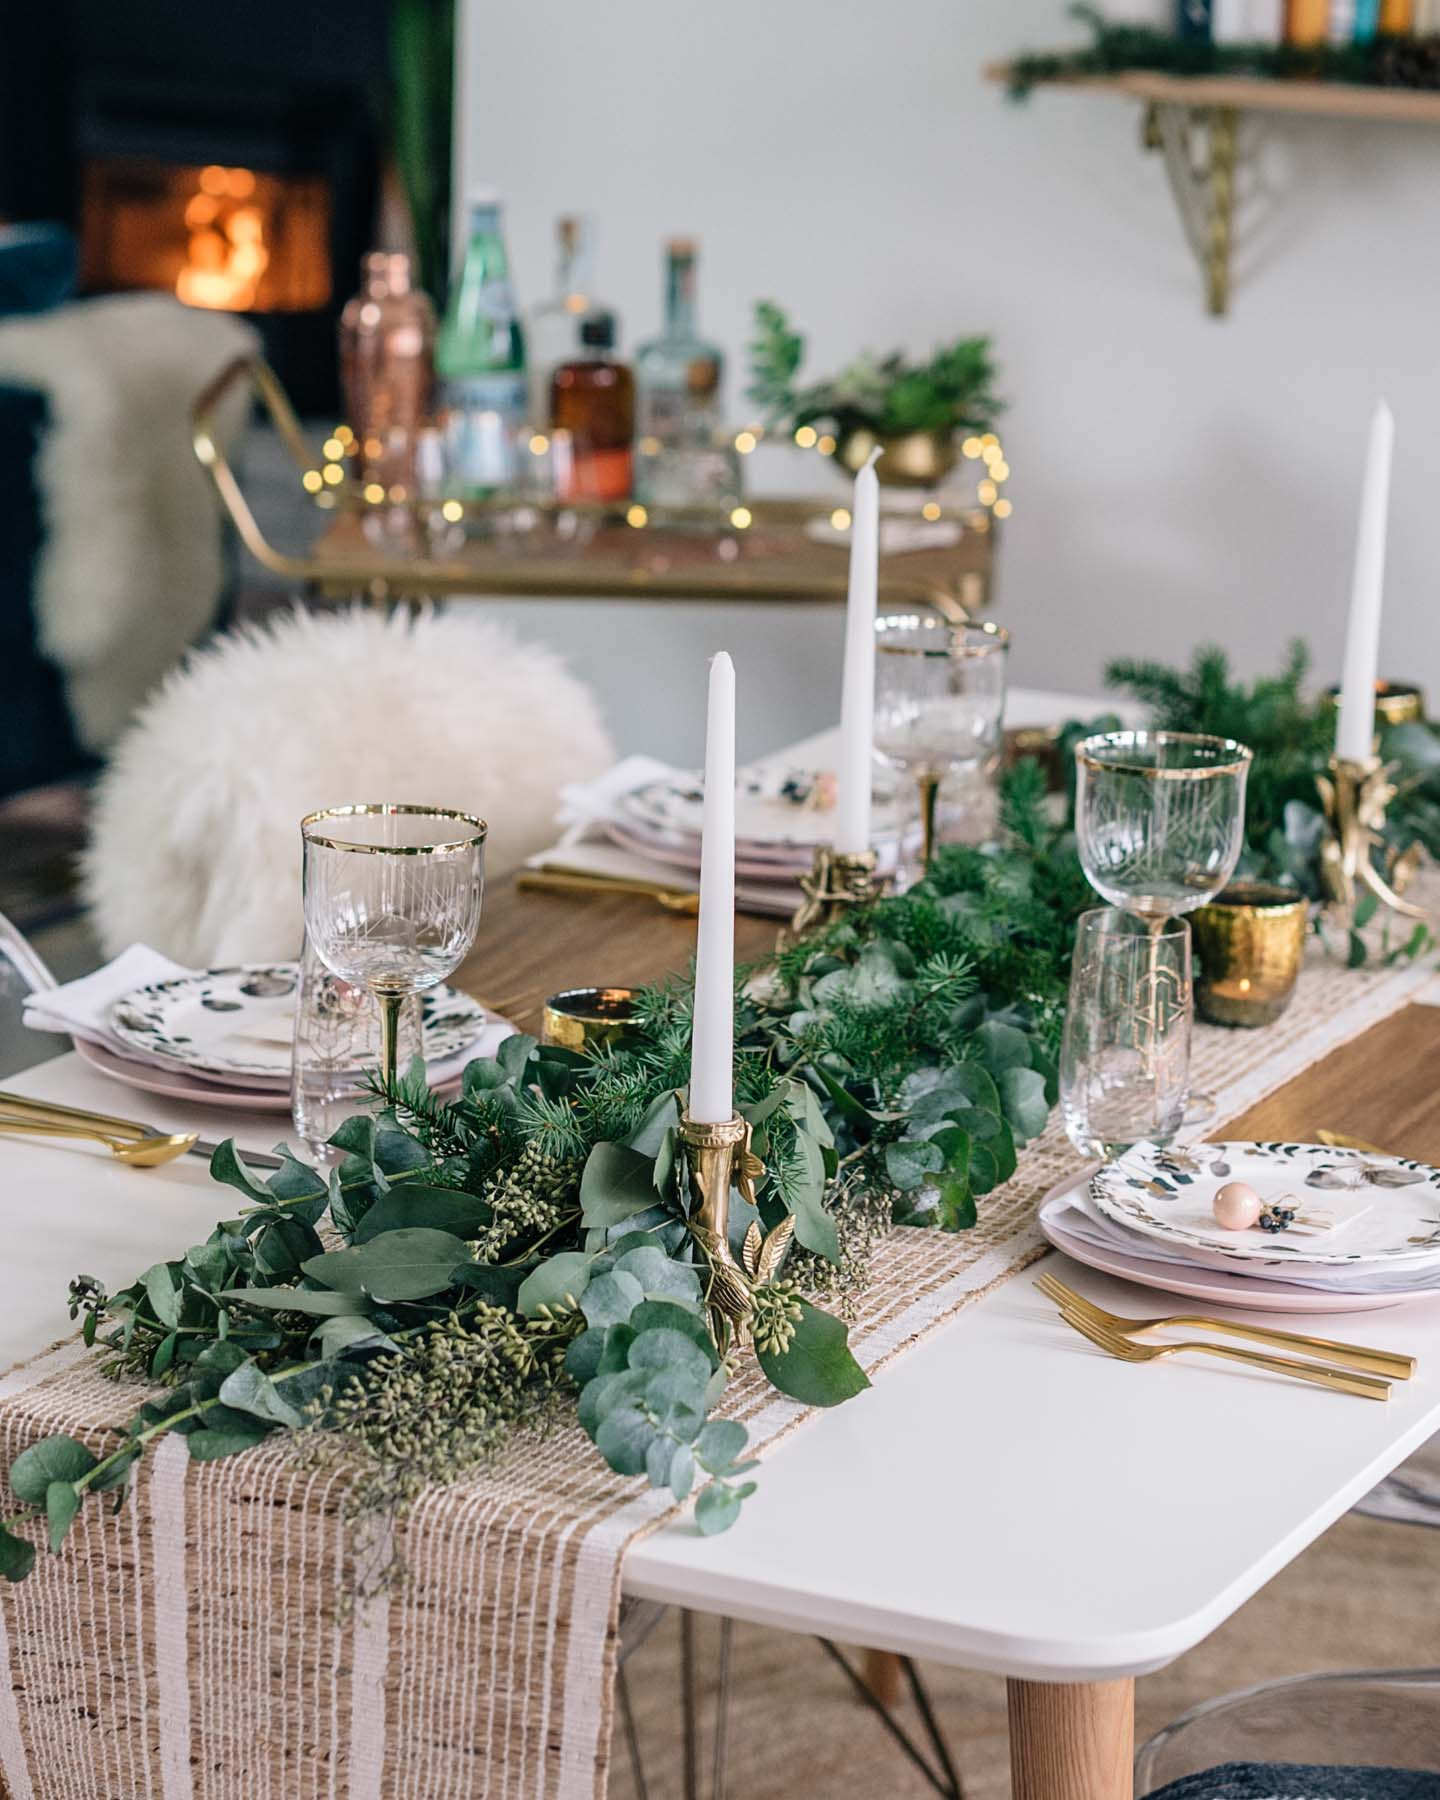 Jess Ann Kirby styles a rustic and minimal holiday tables cape with greenery and glassware from Anthropologie